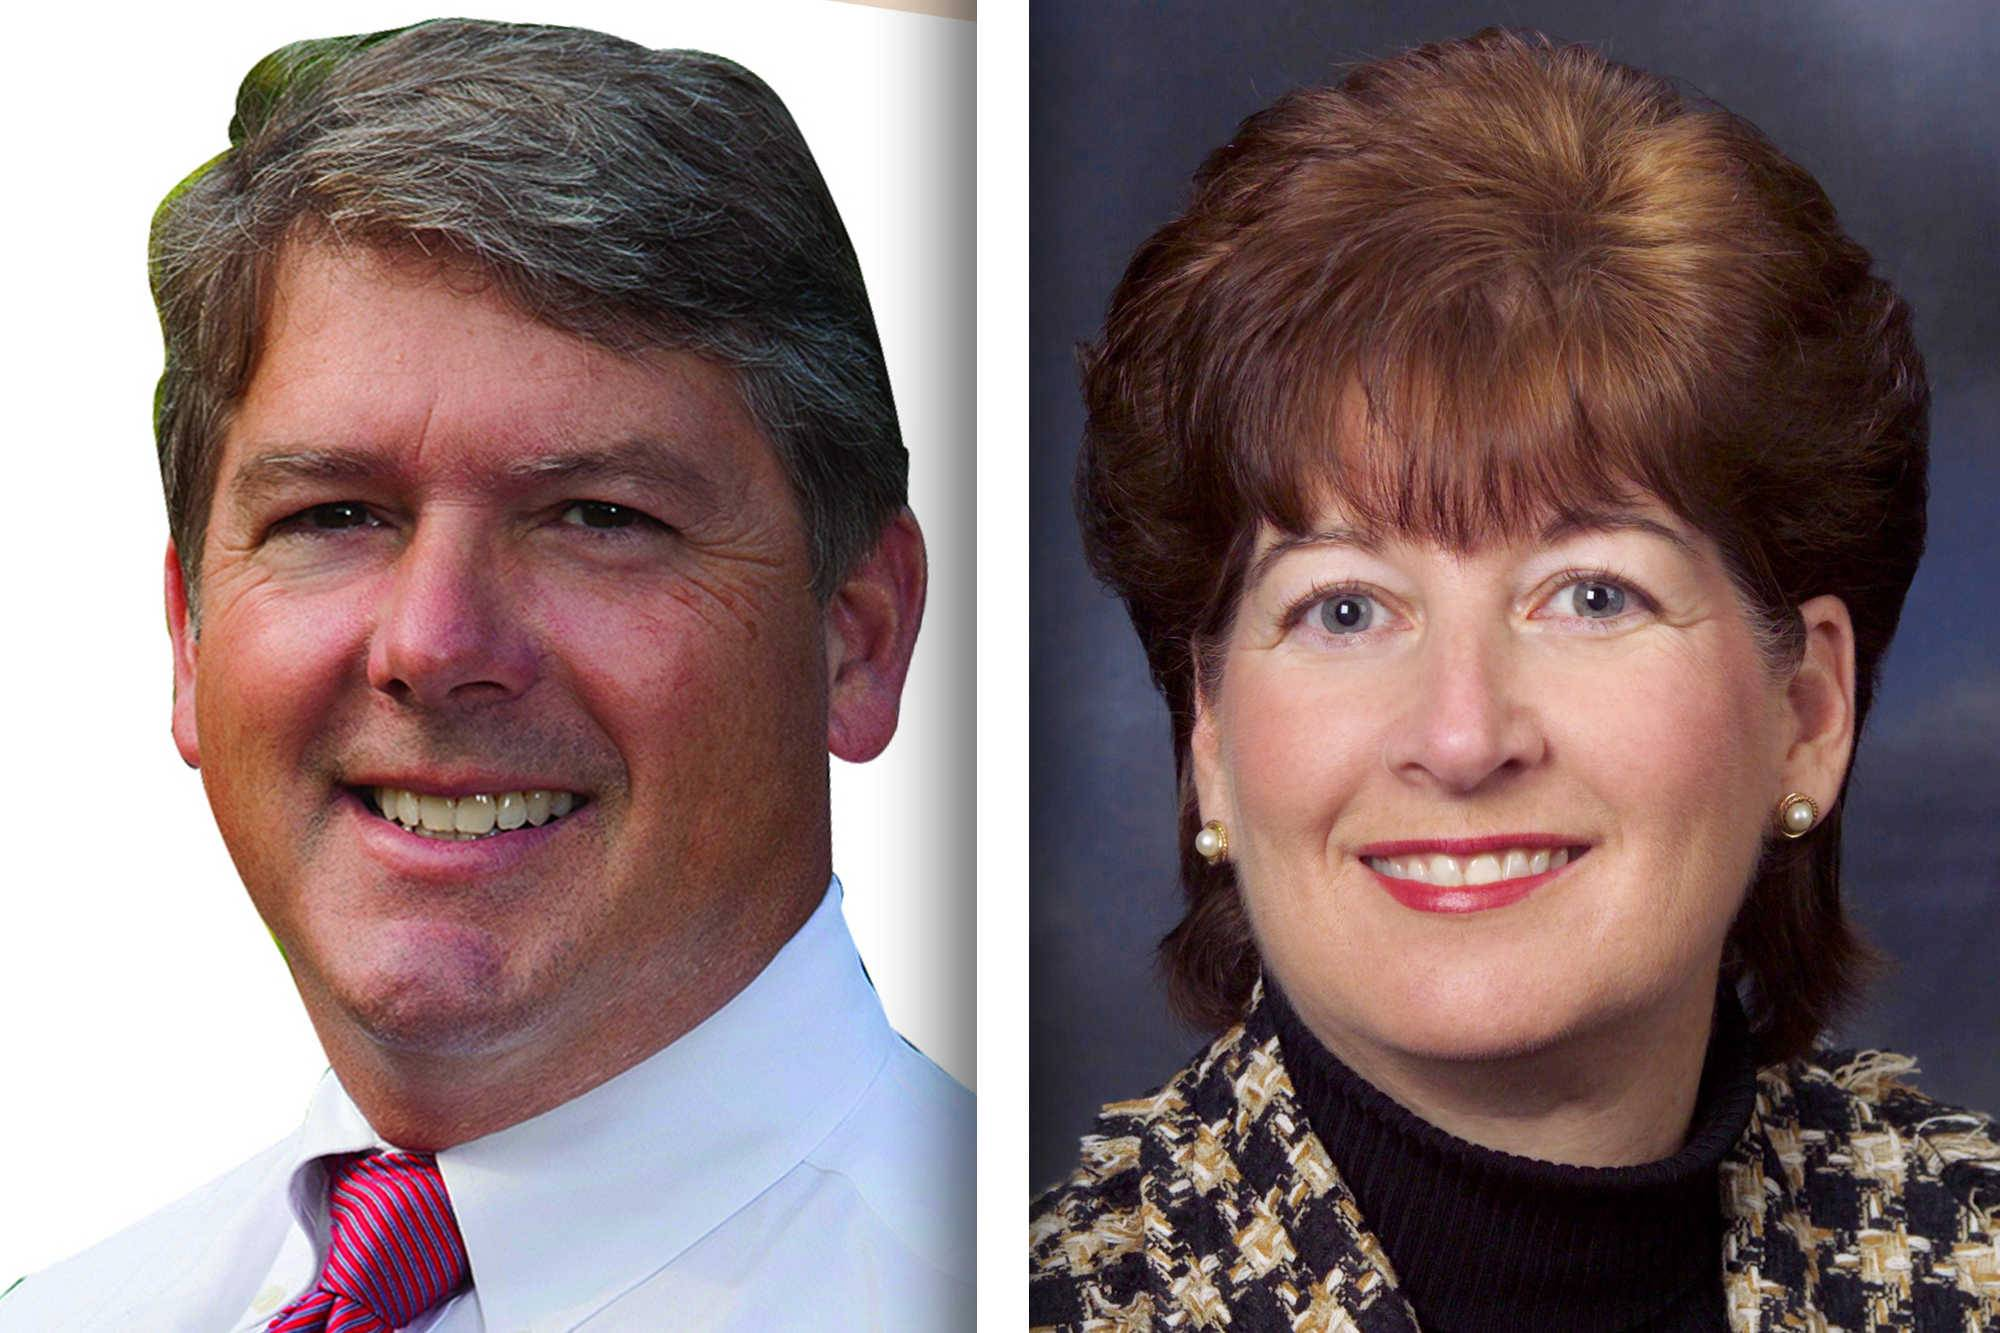 Republican Robert Haraden, left, and Democrat Mary Ellen Vanderventer are candidates for Lake County recorder of deeds.